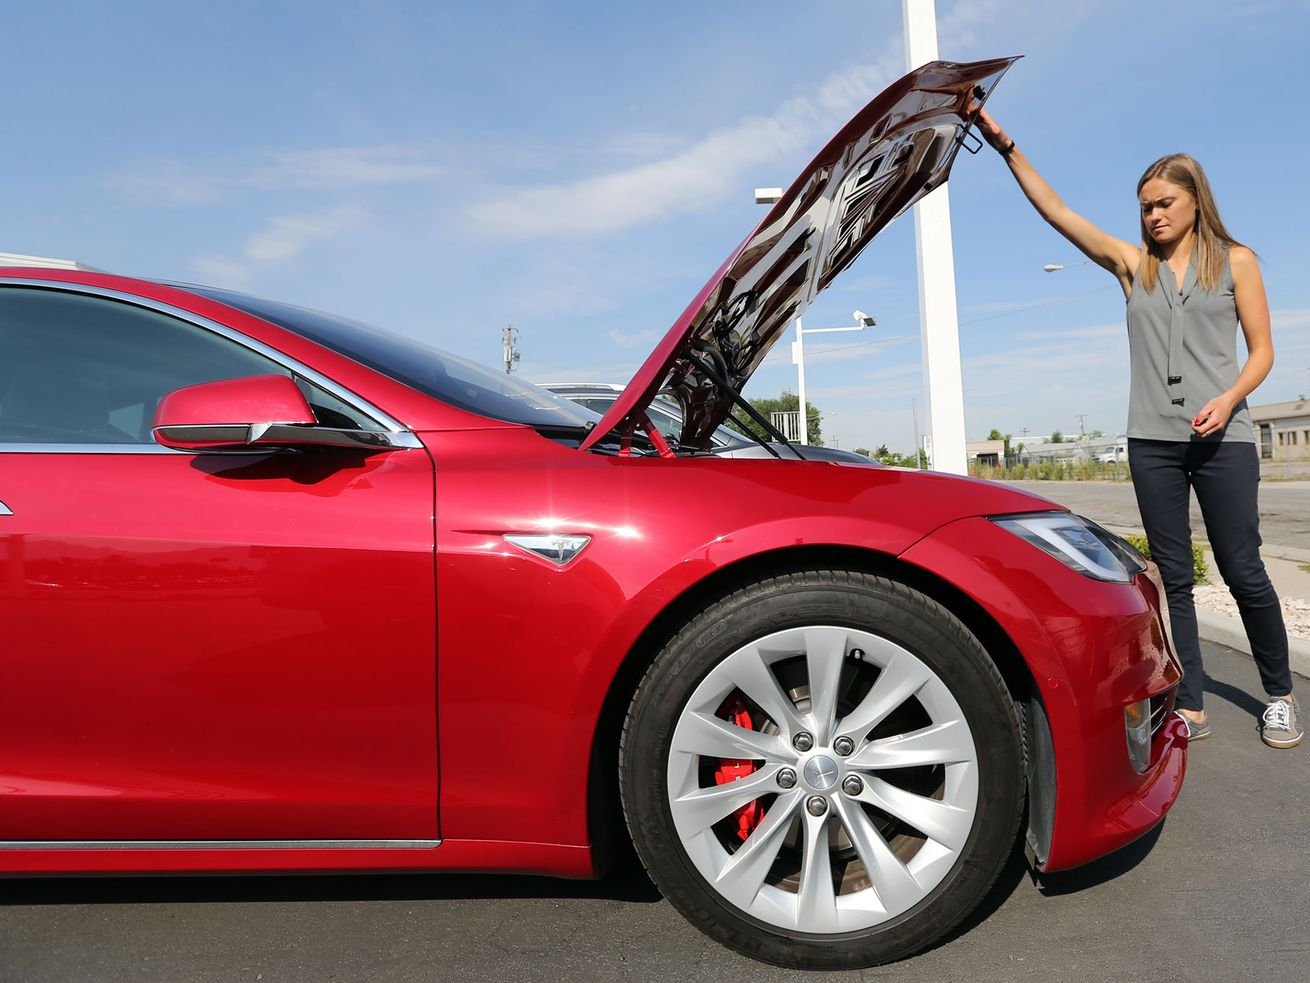 Tesla disputes claims its cars can accelerate on their own